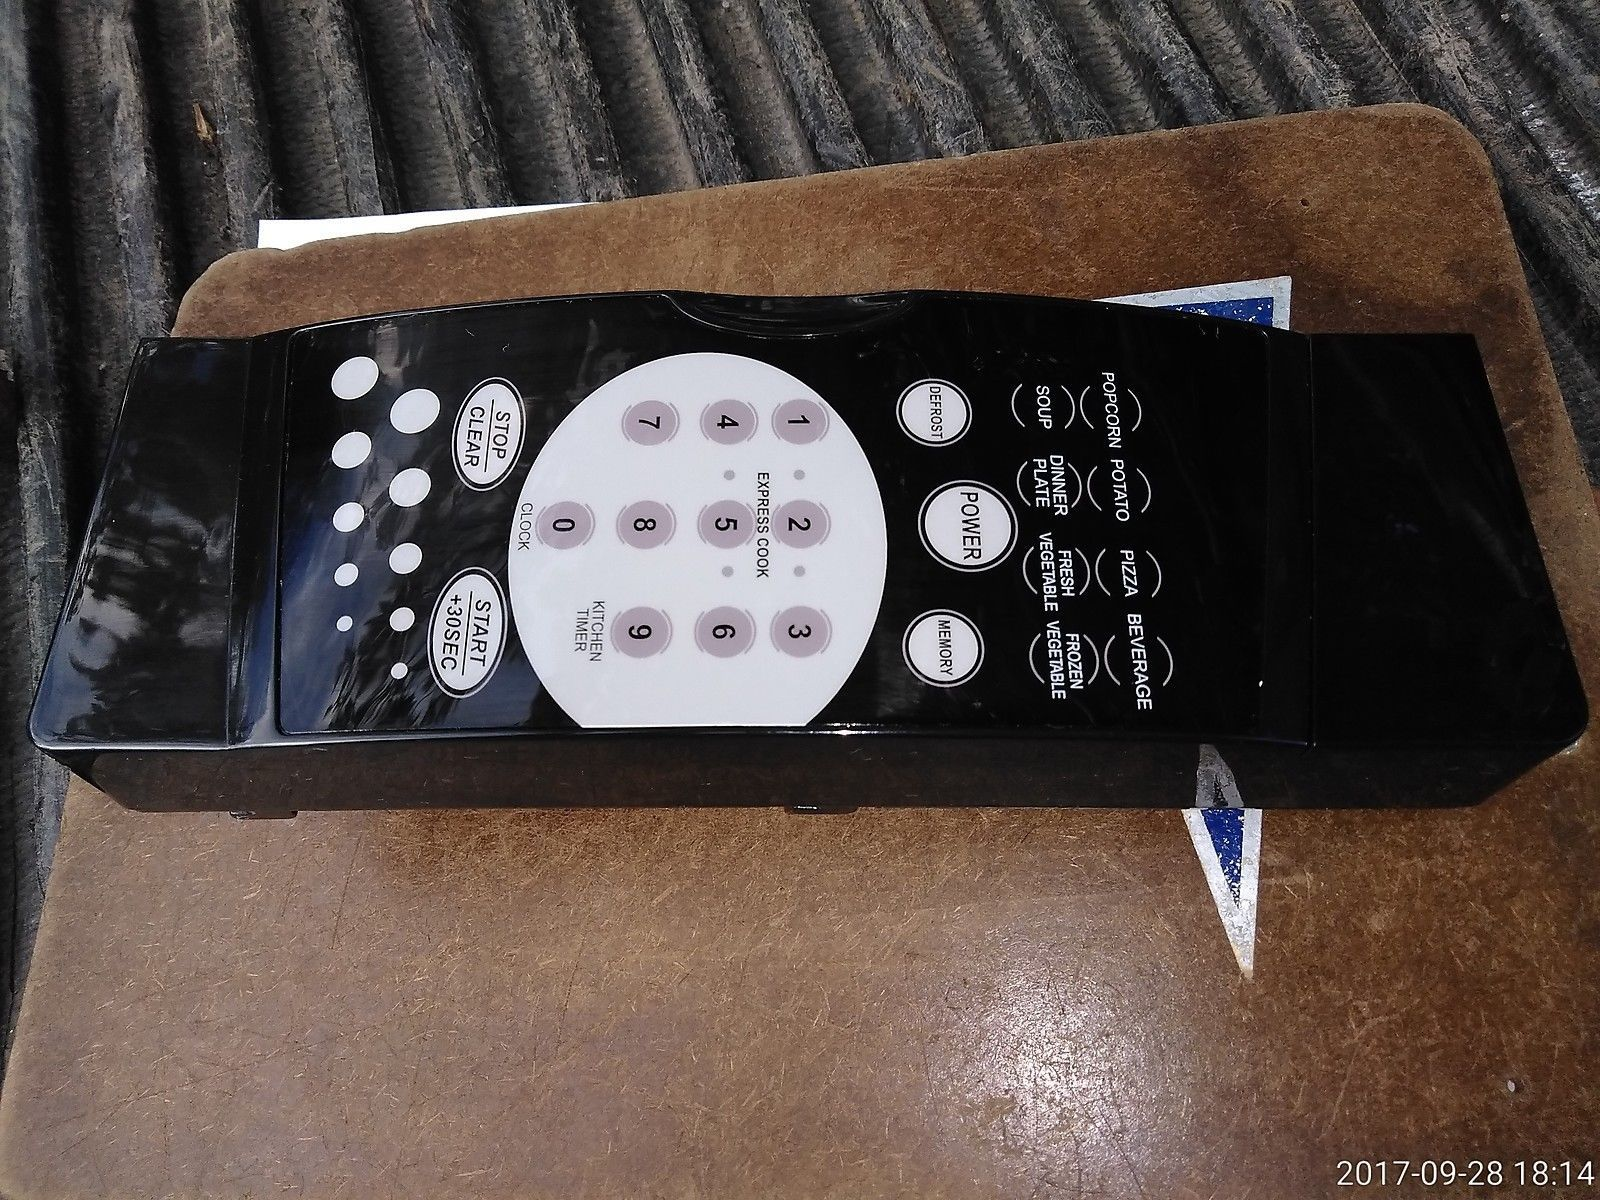 7FFF19 MAIN PANEL FROM WORKING MAGIC CHEF 770 SERIES MICROWAVE OVEN, VERY GOOD - $22.54